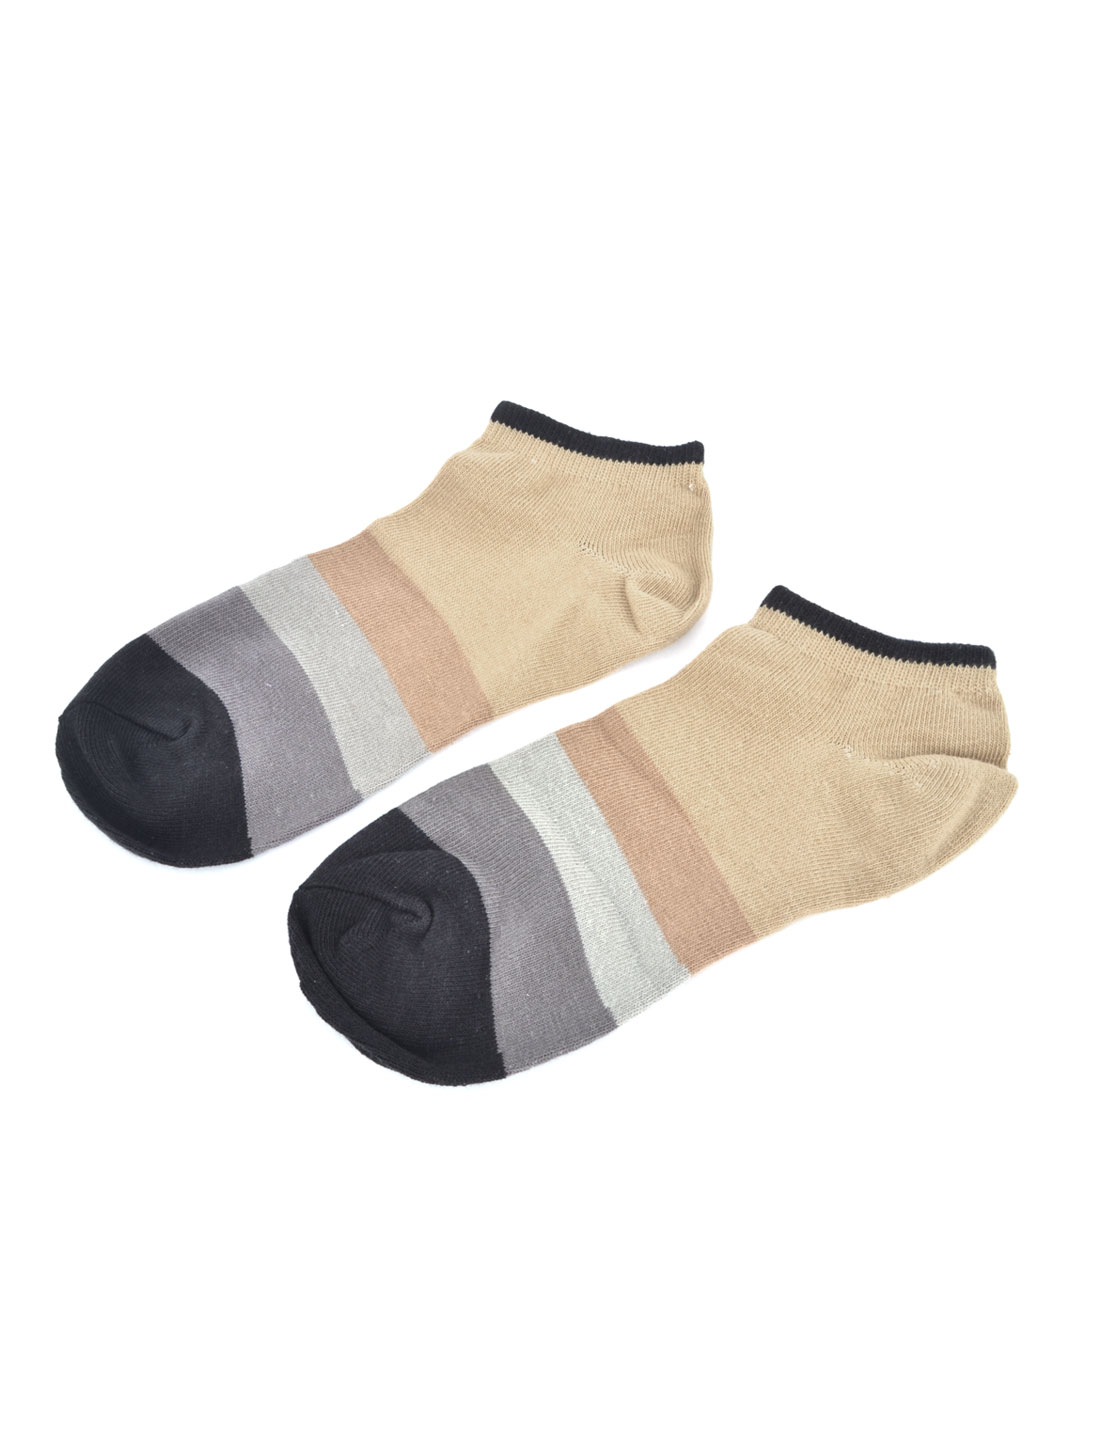 Men Women Ankle No Show Soft Casual Short Hosiery Socks Colorful Pair